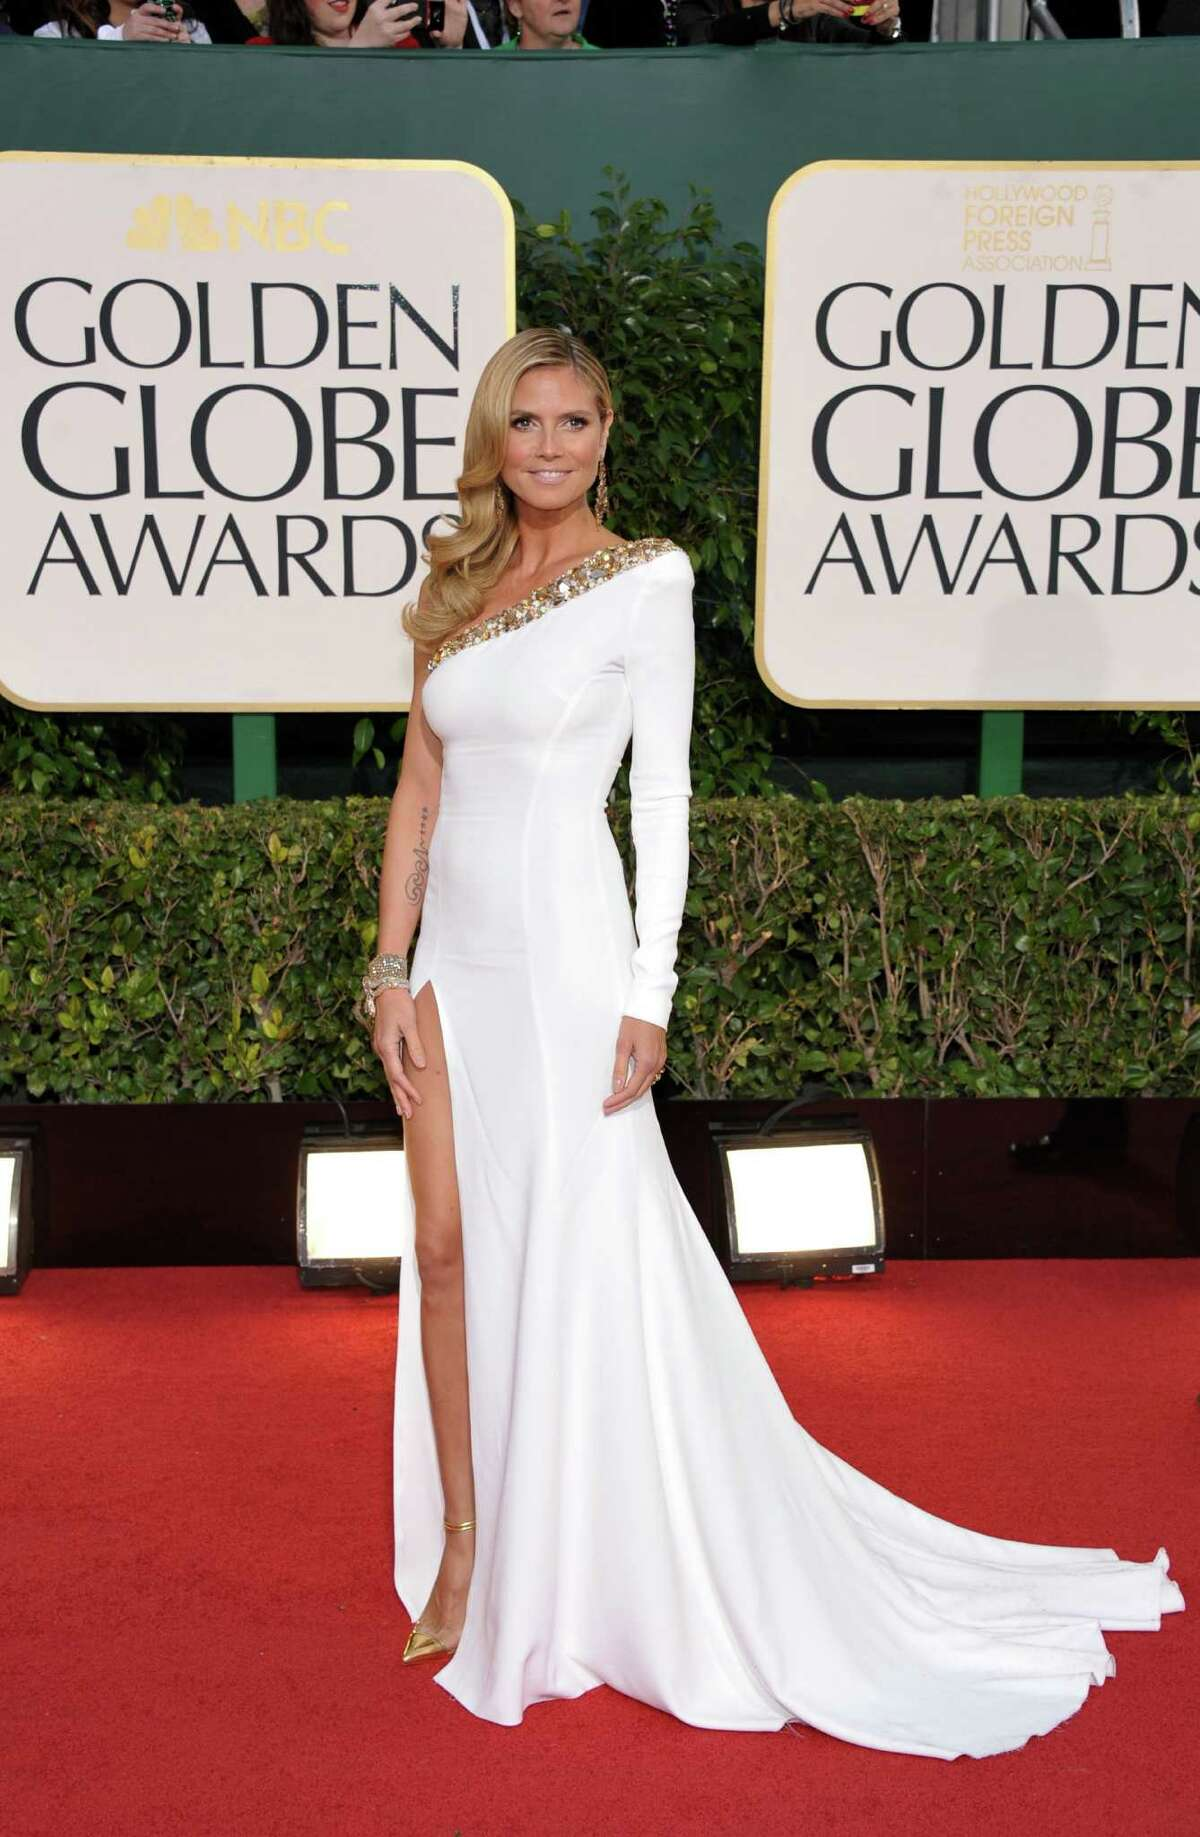 Worst: This looks like a pageant gown on Heidi Klum -- dated and too hoochie for the occasion.